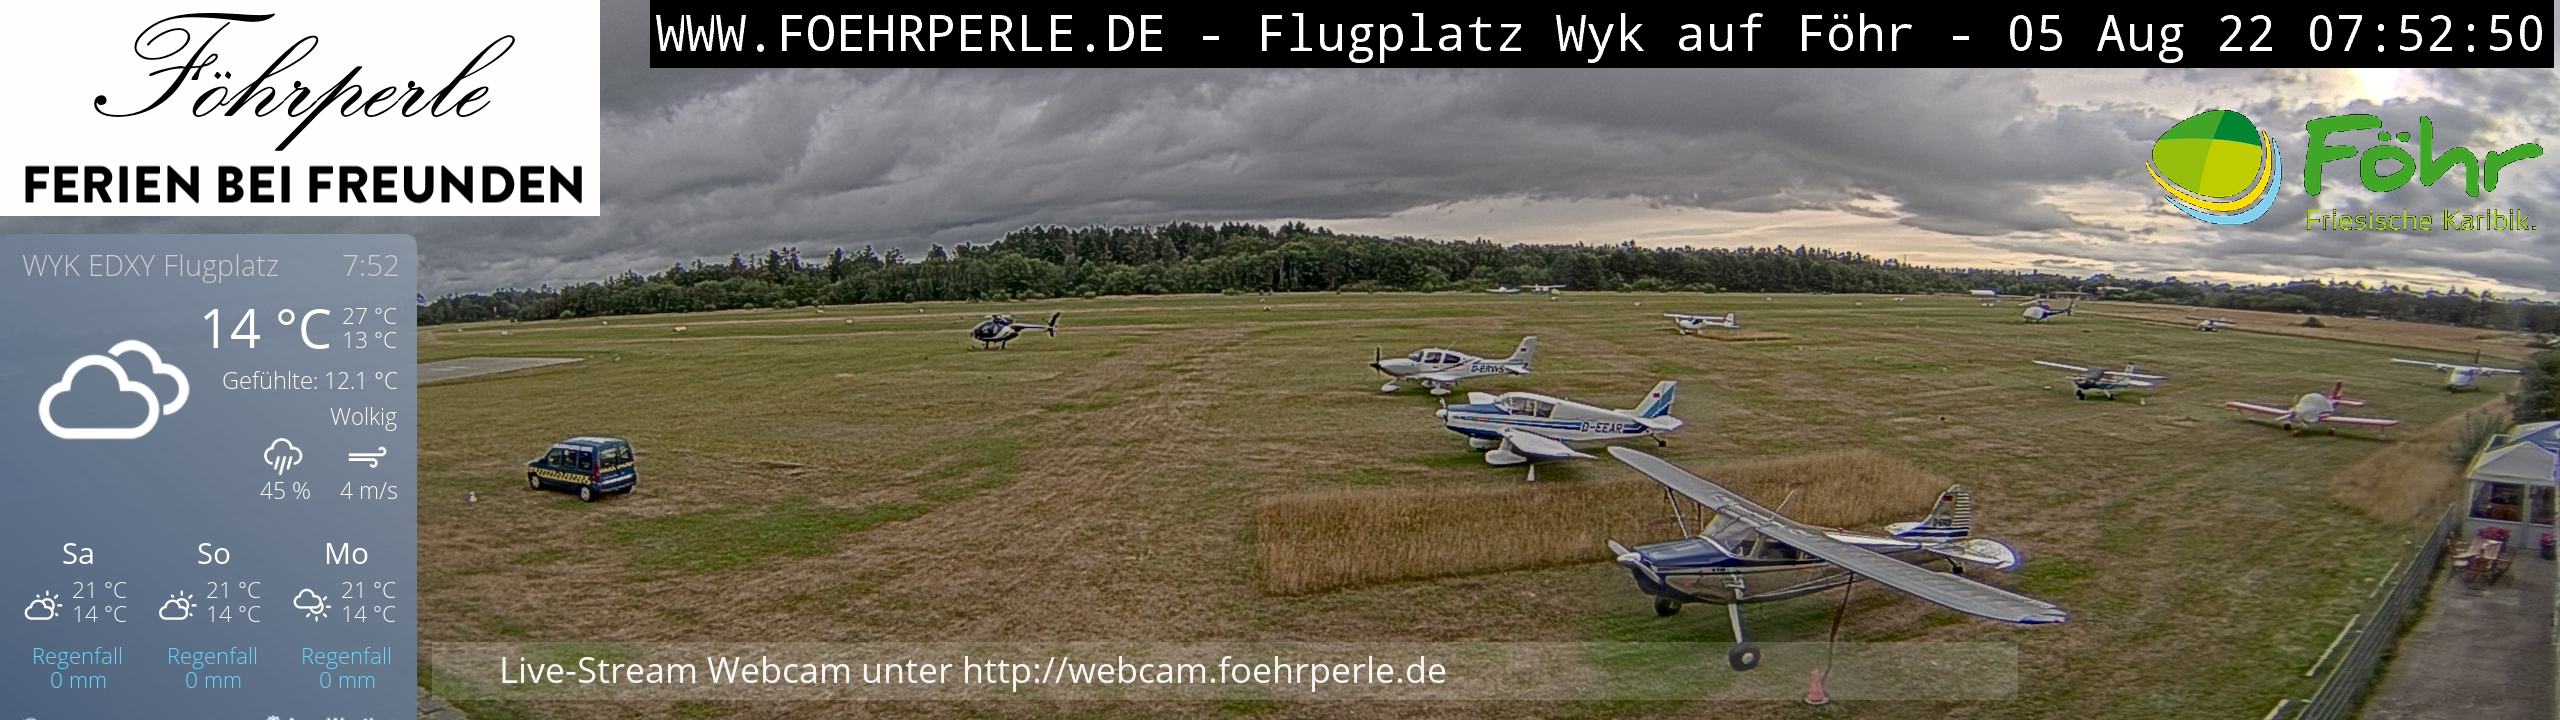 Webcam Föhr Flugplatz Wyk EDXY - Live Webcam Nordseeinsel Föhr - http://webcam.foehrperle.de